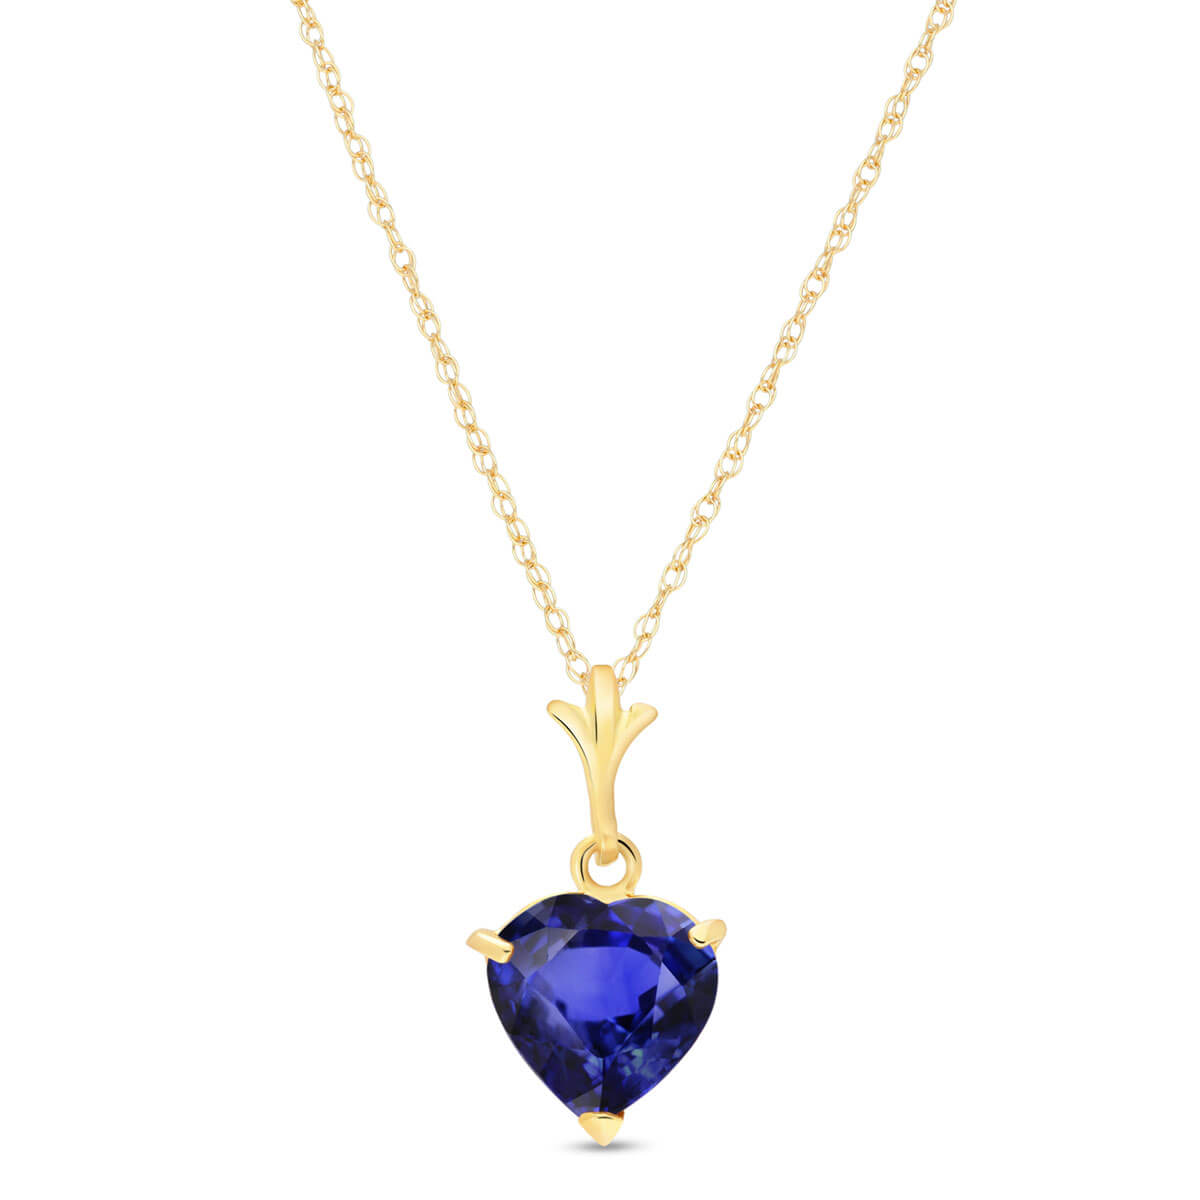 Sapphire Heart Pendant Necklace 1.55 ct in 9ct Gold